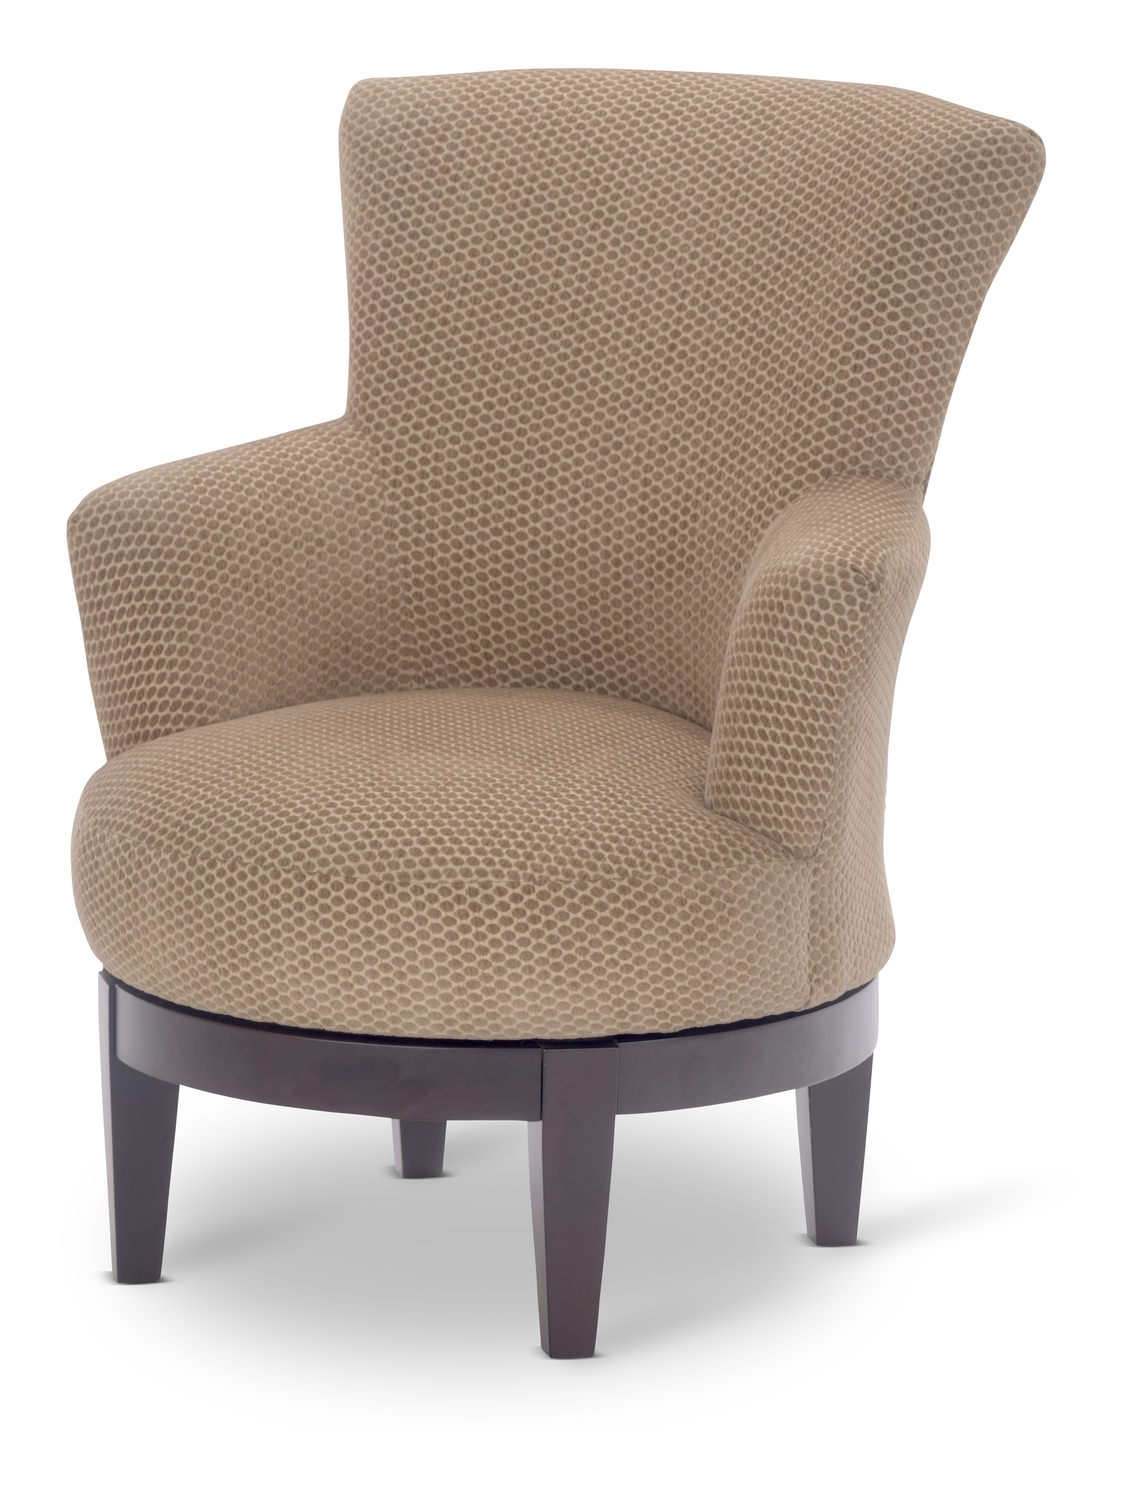 Attica Arm Chairs Pertaining To Well Known Accent Chairs & Chaises – Living Room – Hom Furniture (View 4 of 20)